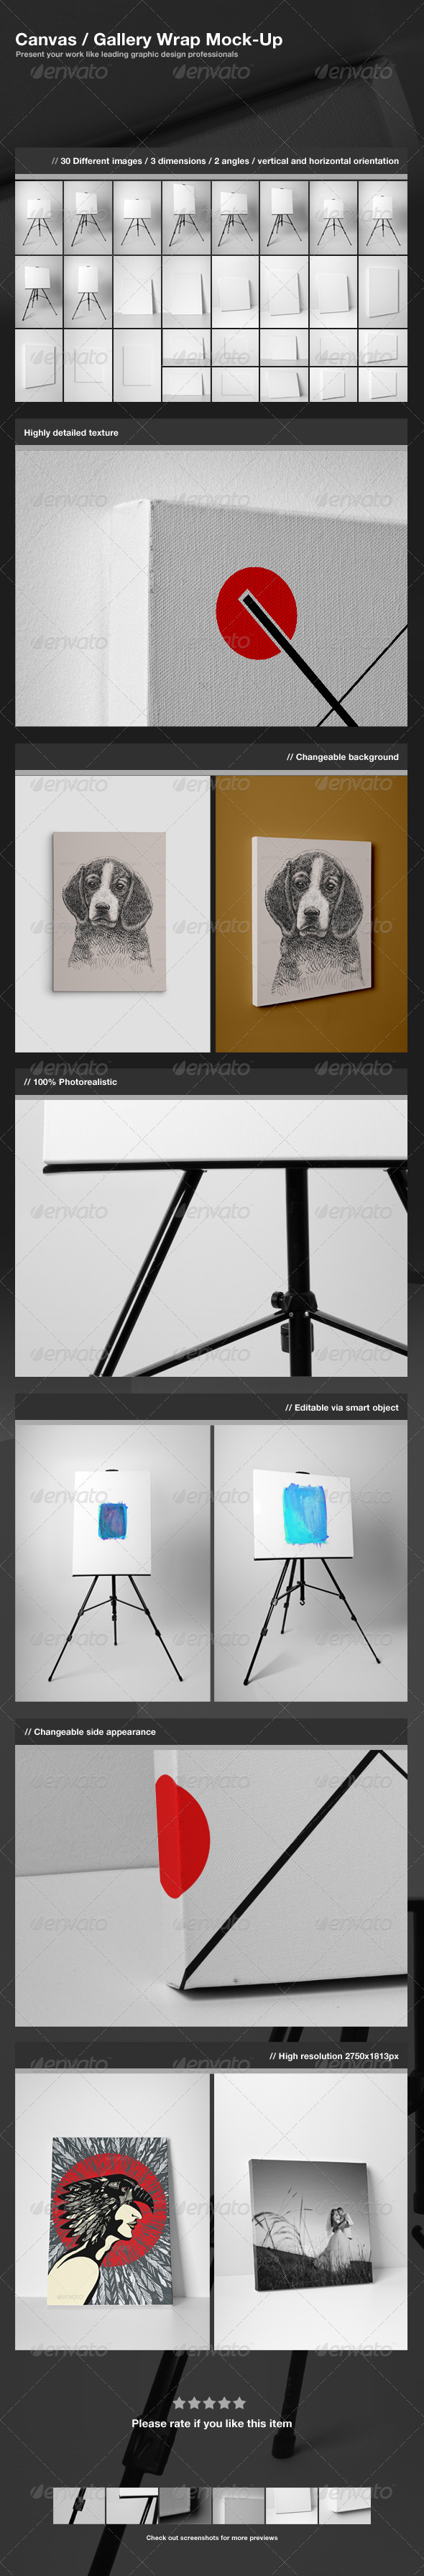 Canvas Gallery Wrap Mock-Up  - Miscellaneous Displays